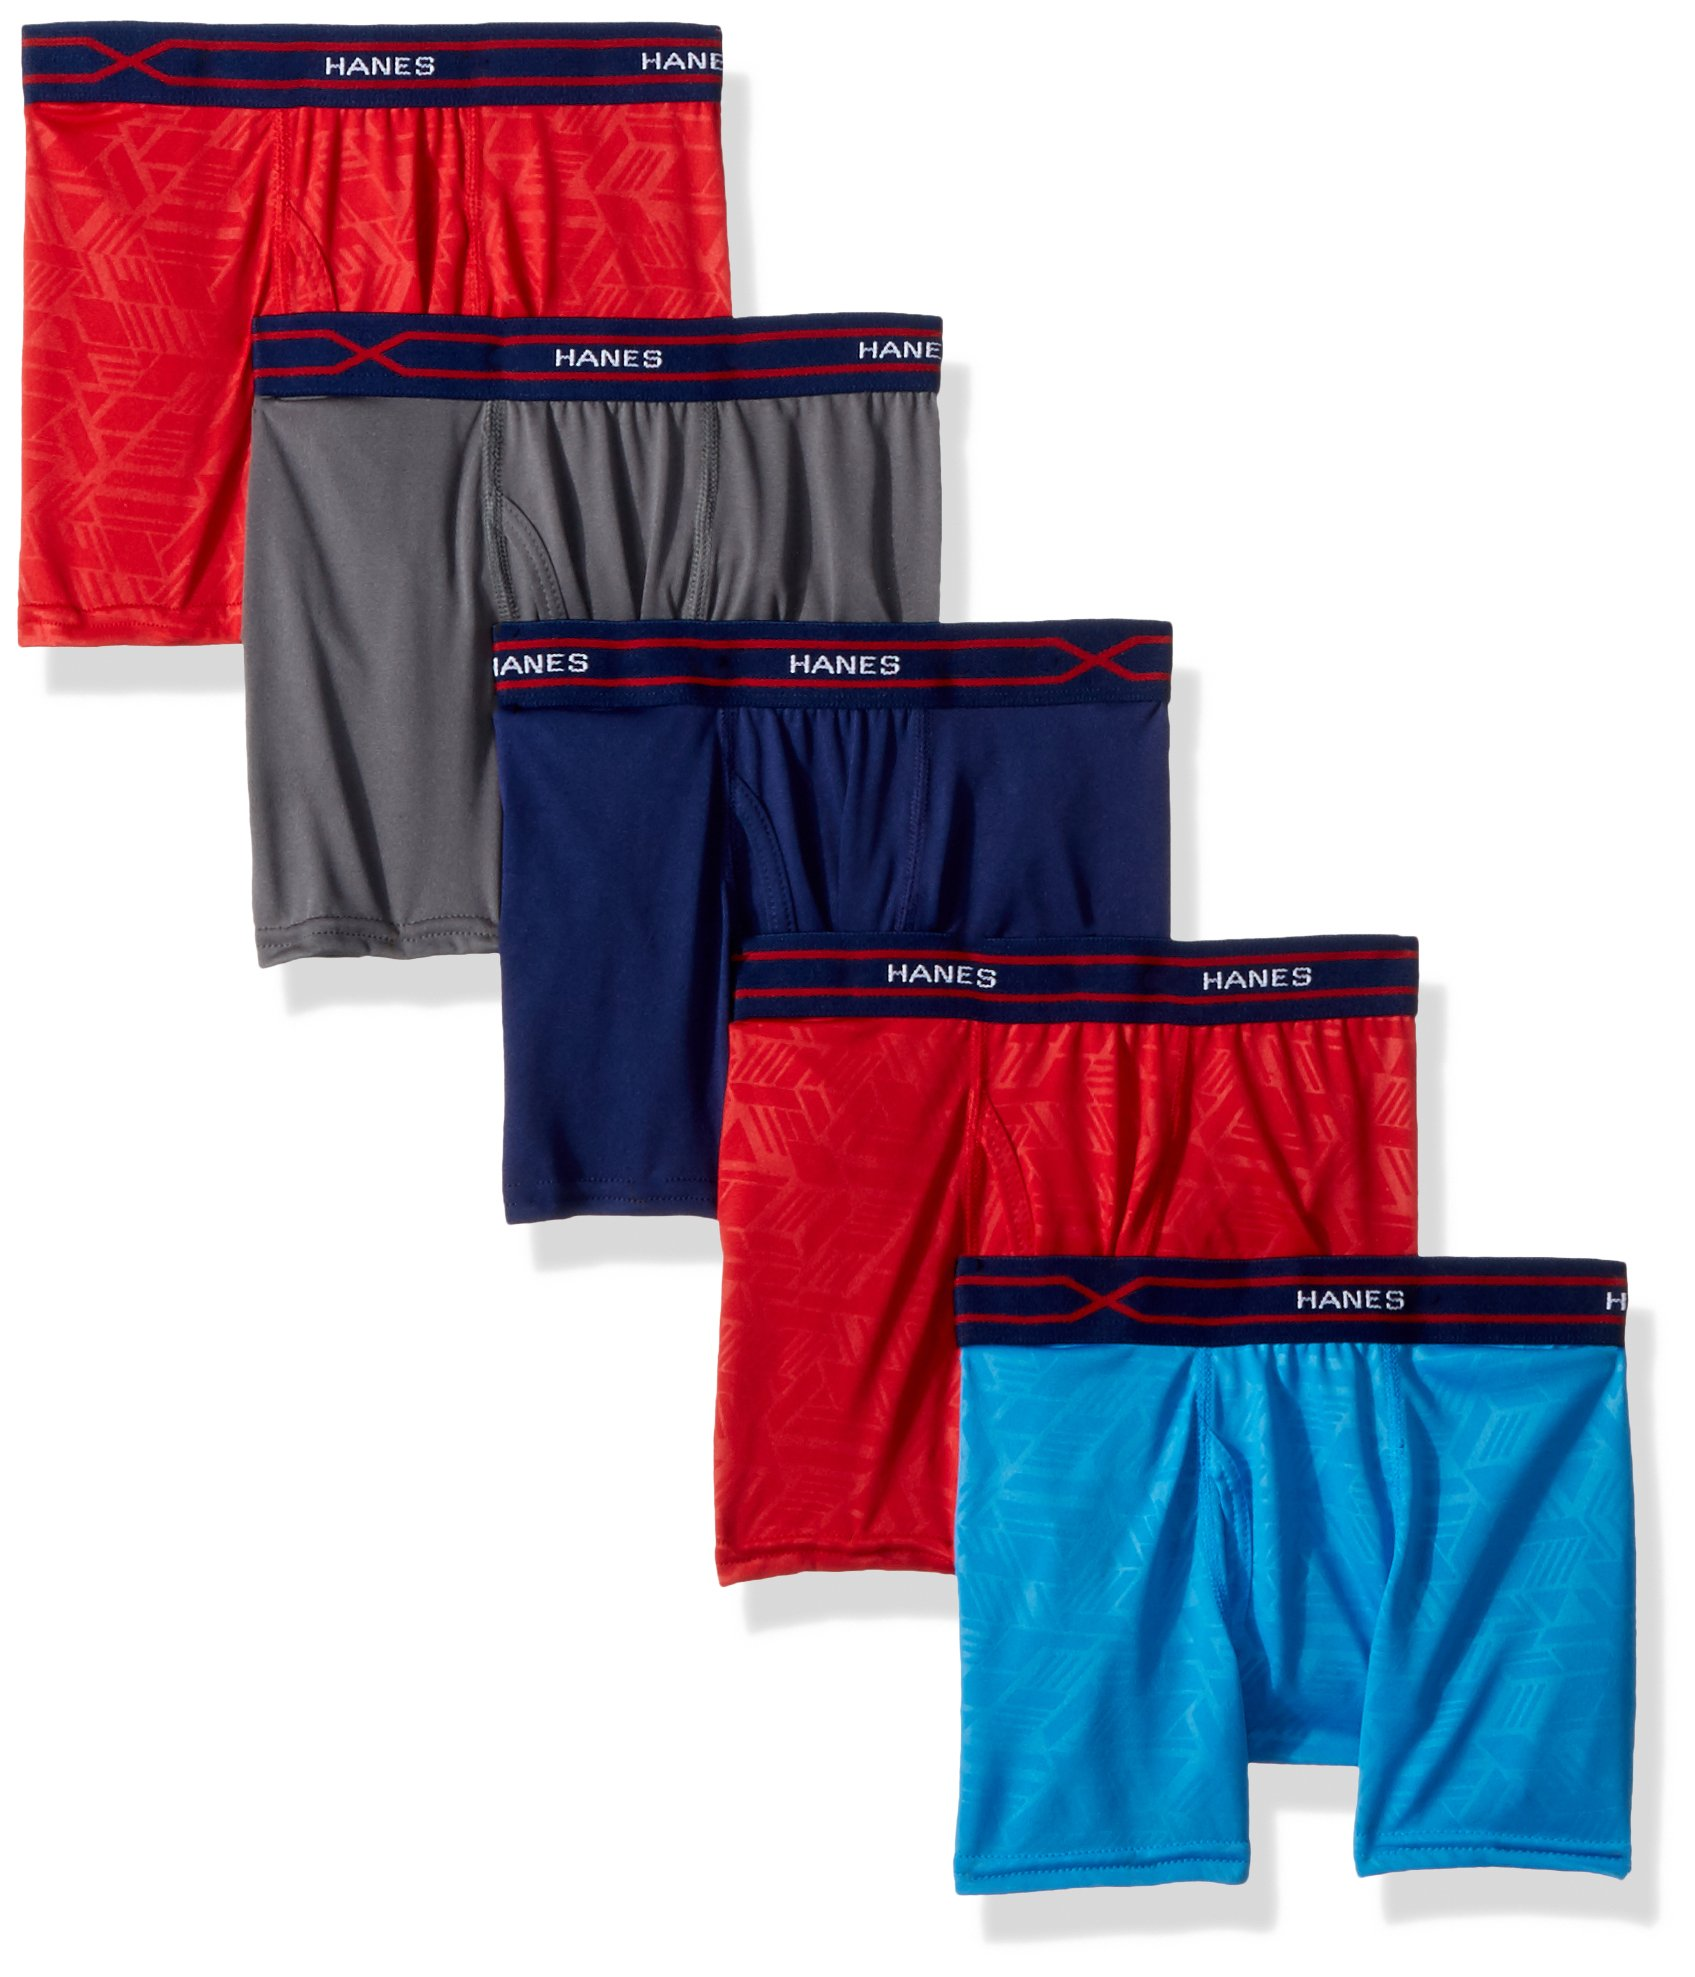 Hanes Boys' X-Temp Performance Cool Boxer Brief 5-Pack, Assorted, Large by Hanes